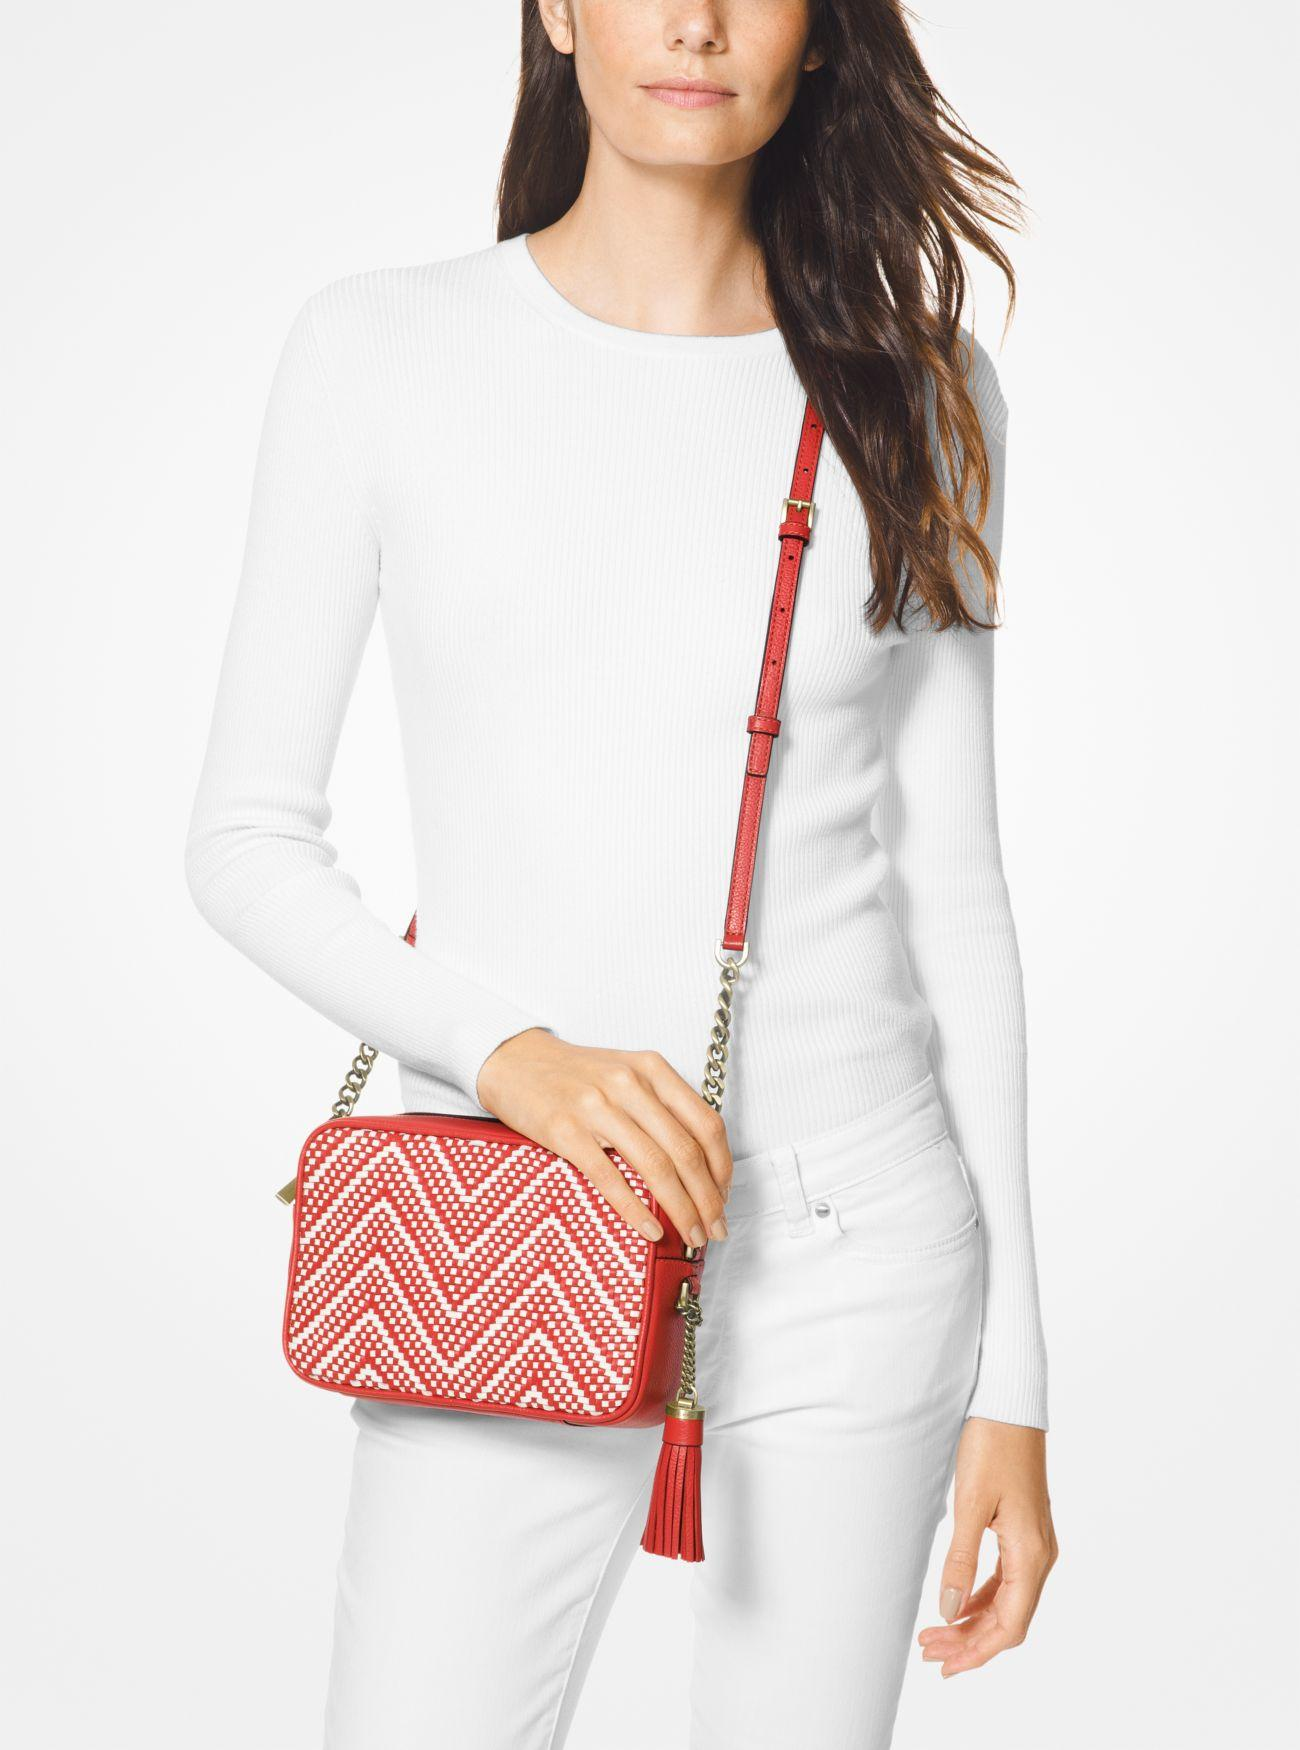 c28cacd46 Lyst - MICHAEL Michael Kors Ginny Medium Woven Leather Crossbody in Red